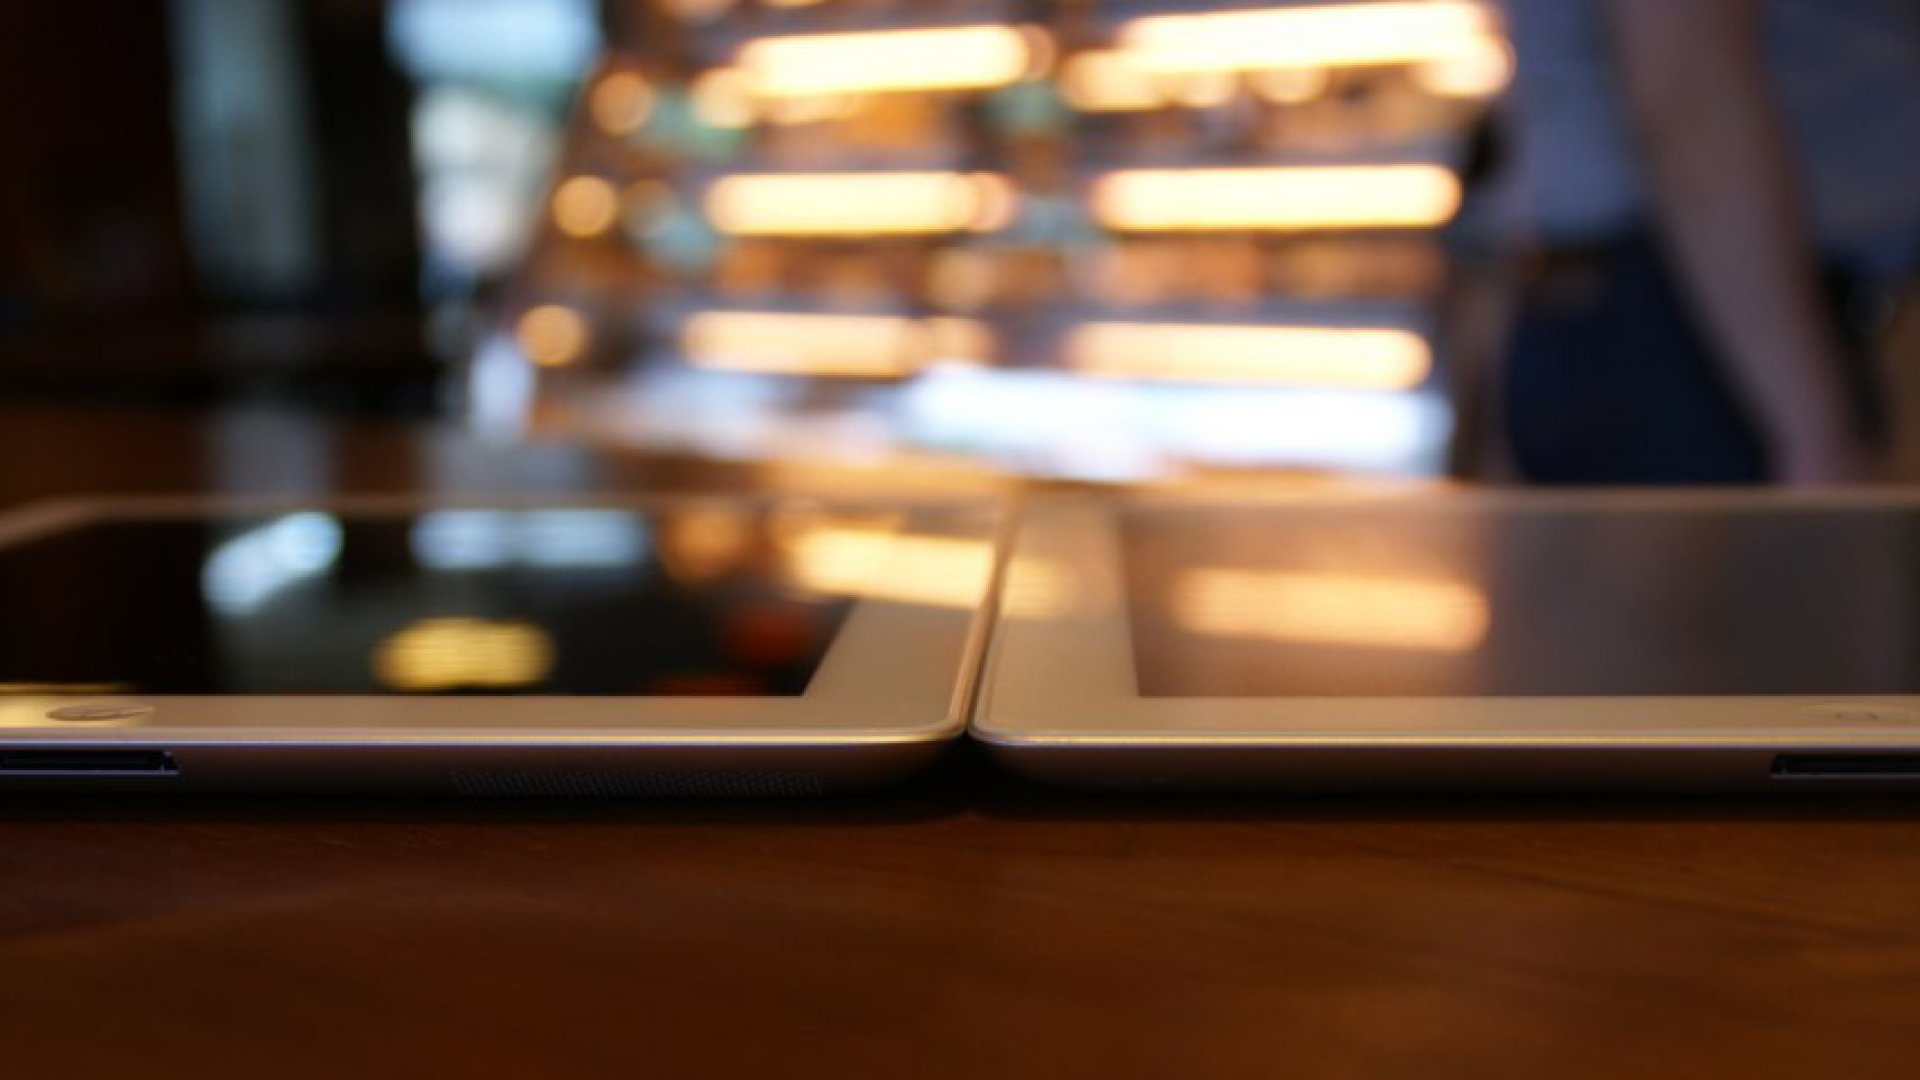 Need to Boost Sales? Tablets Are Your New Best Friend